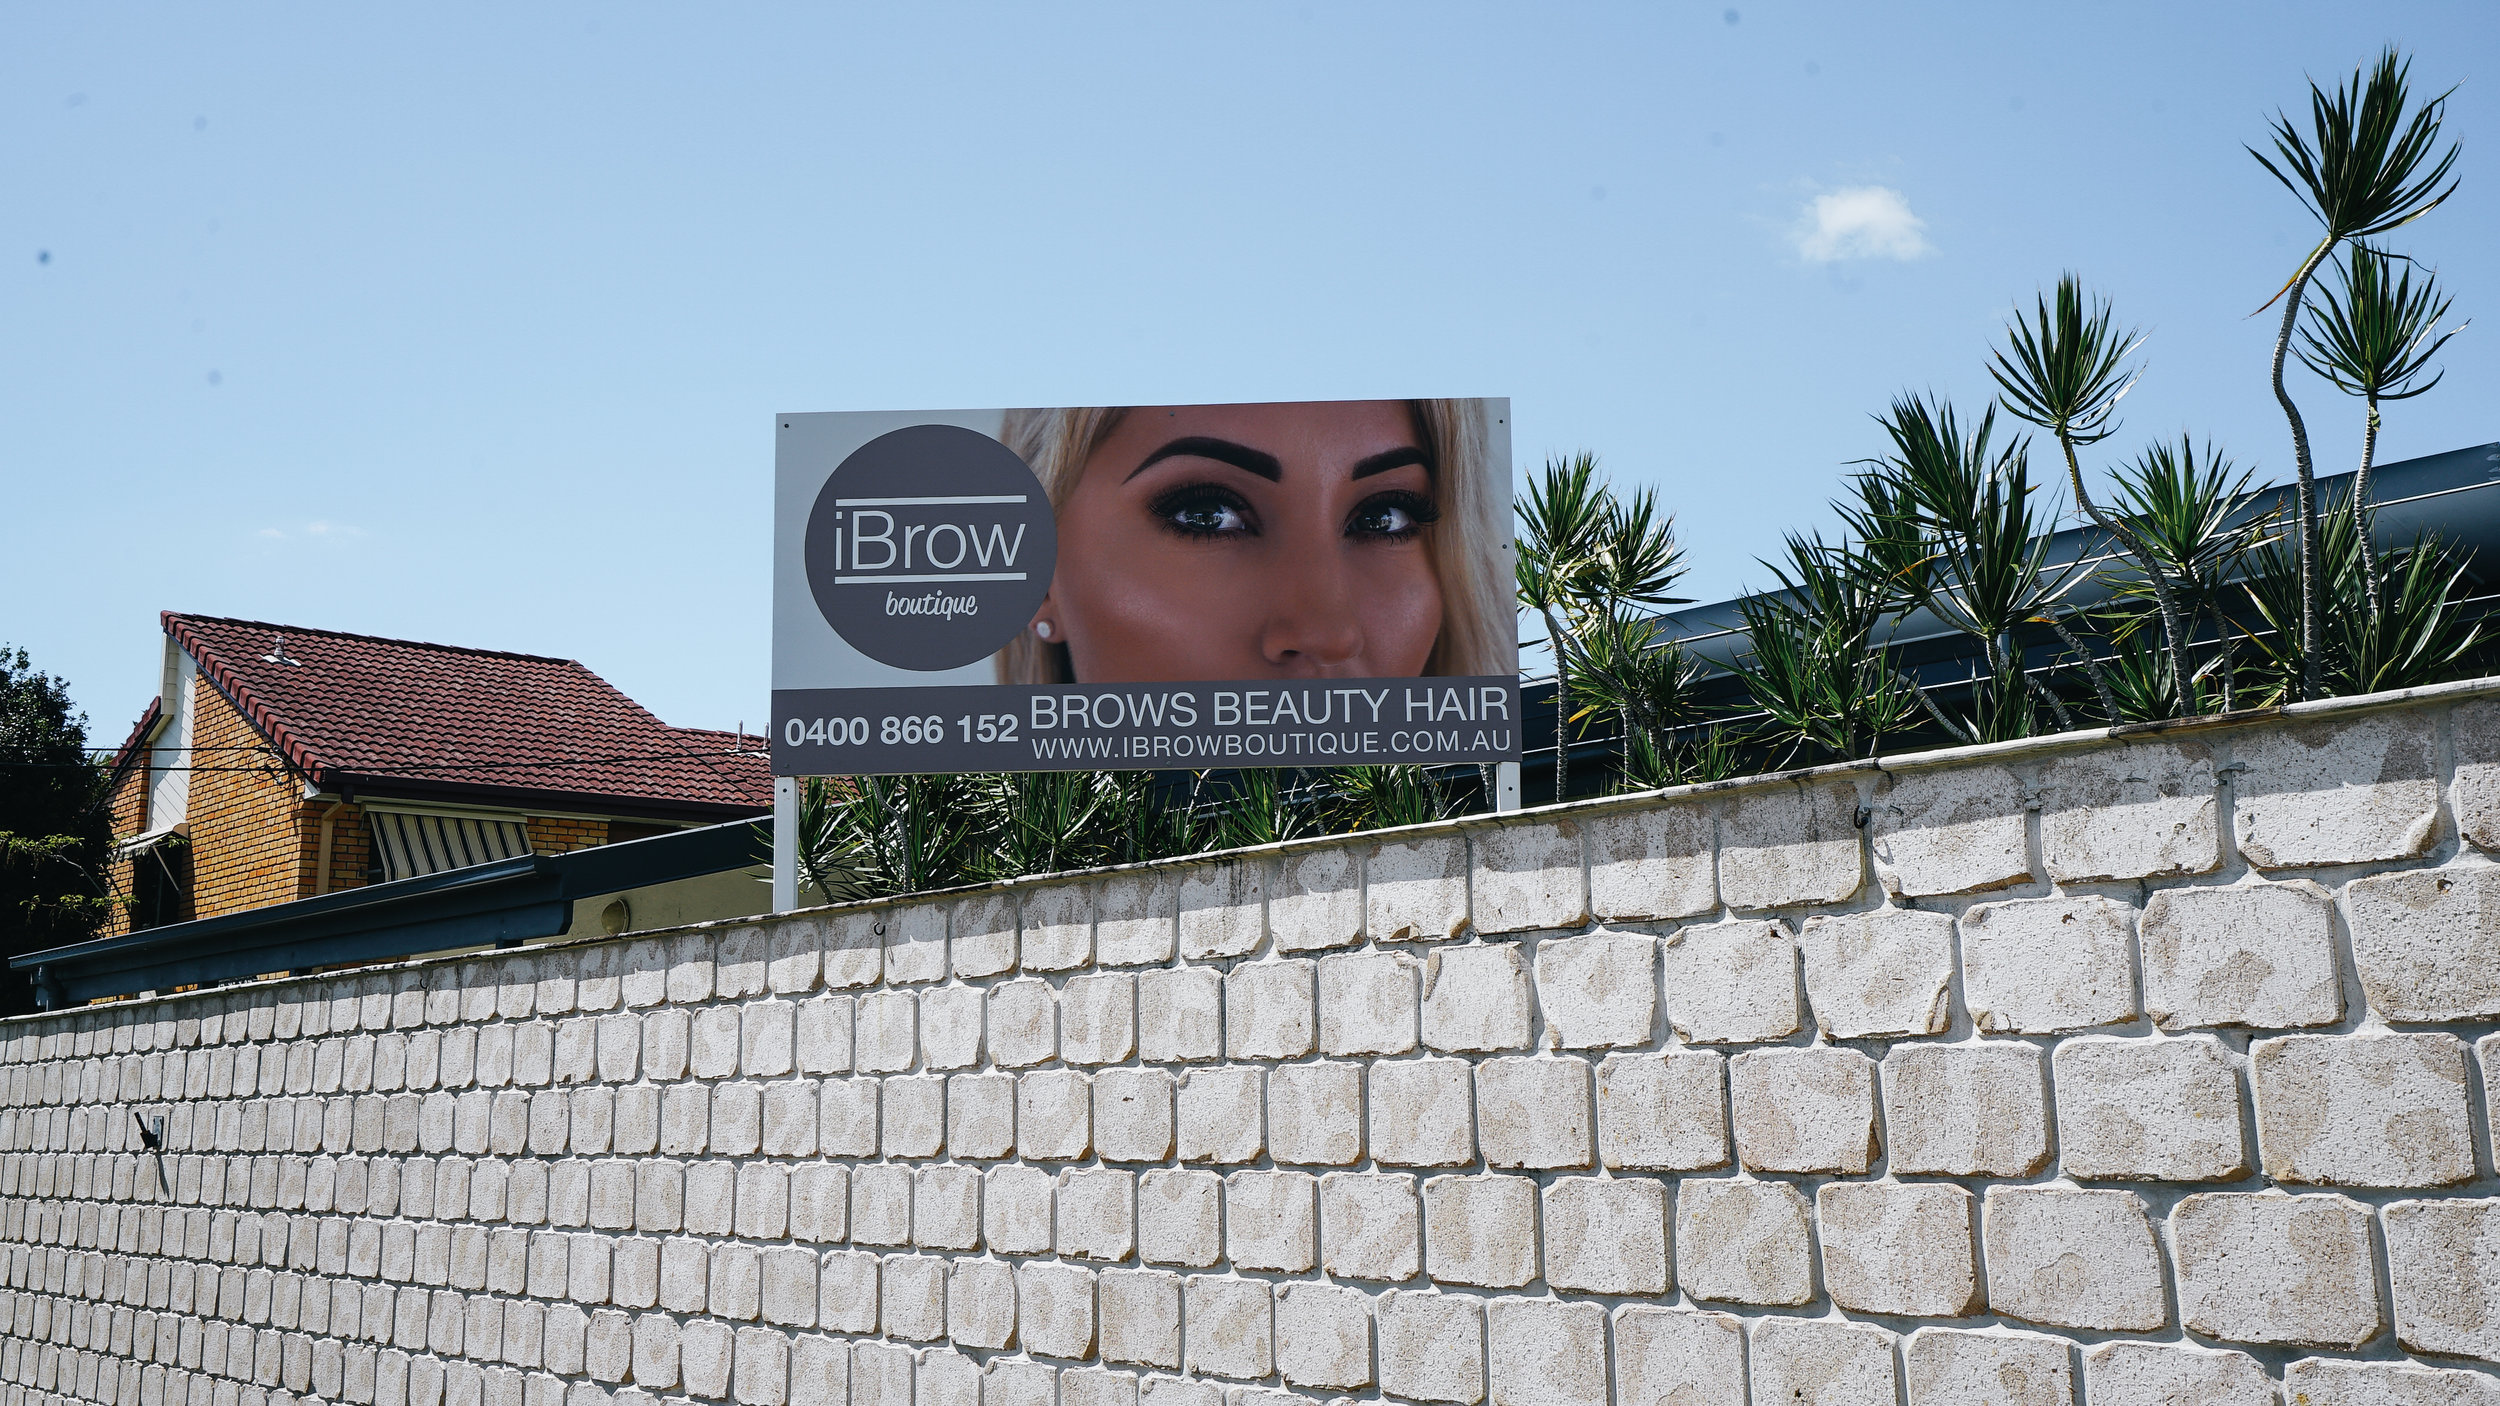 ibrow images (173 of 213).jpg